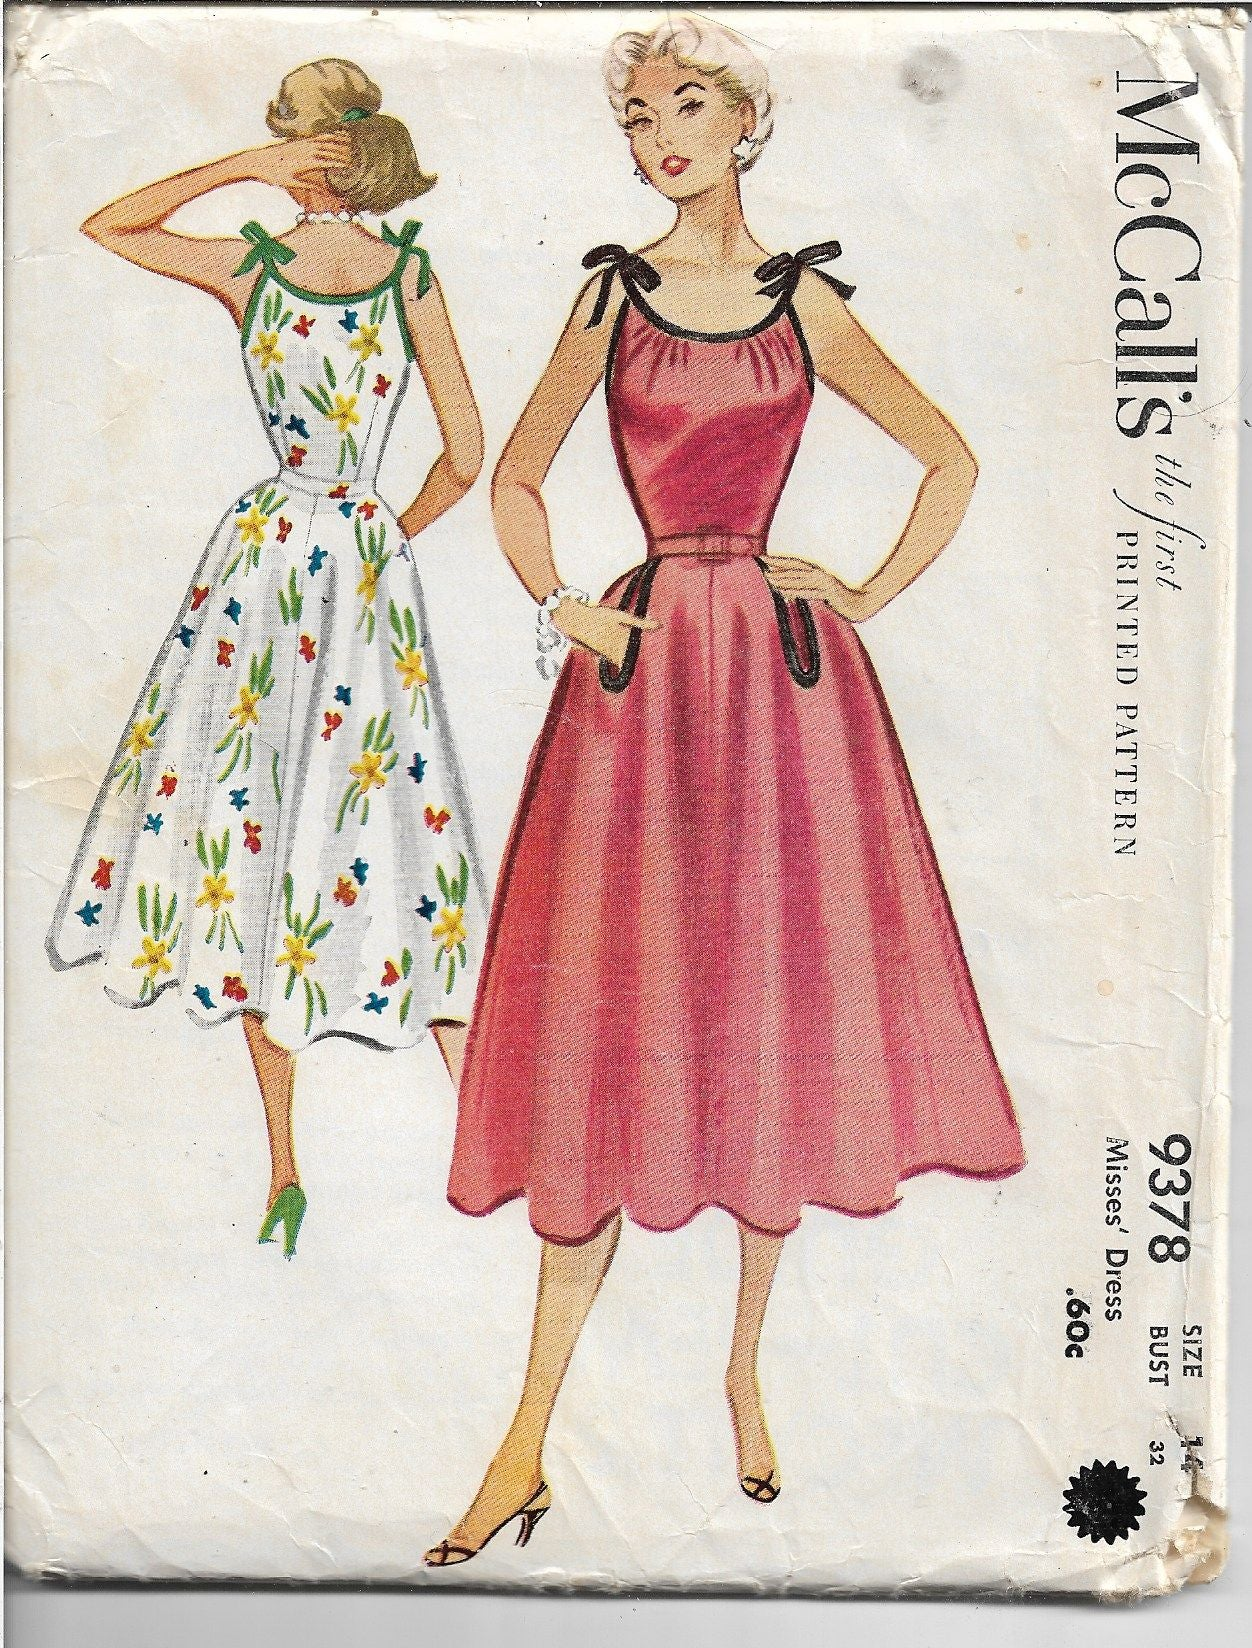 McCalls 9378 Ladies Summer Sundress Vintage Sewing Pattern 1950s - VintageStitching - Vintage Sewing Patterns